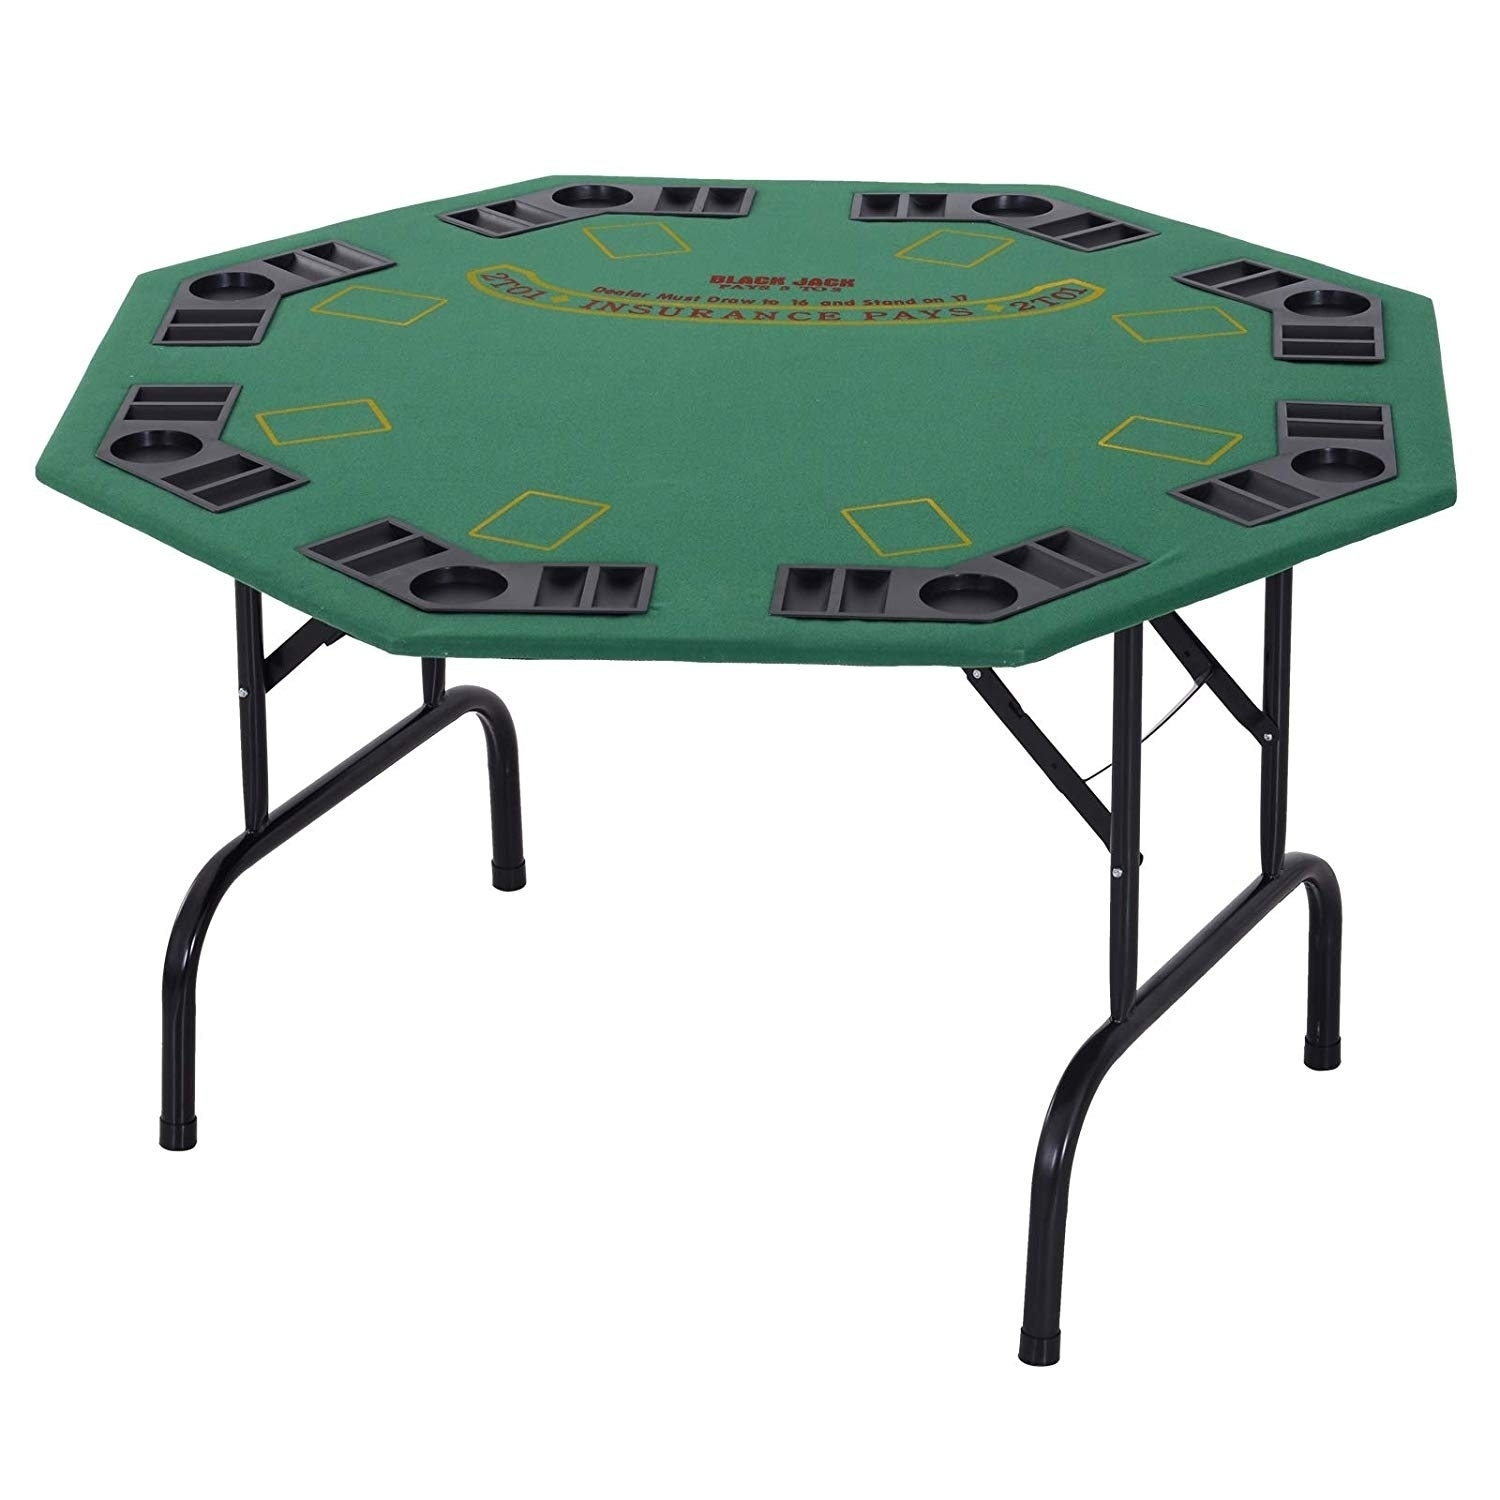 """Soozier 9"""" 9 Person Octagonal Foldable Poker Table with Cup Holders"""